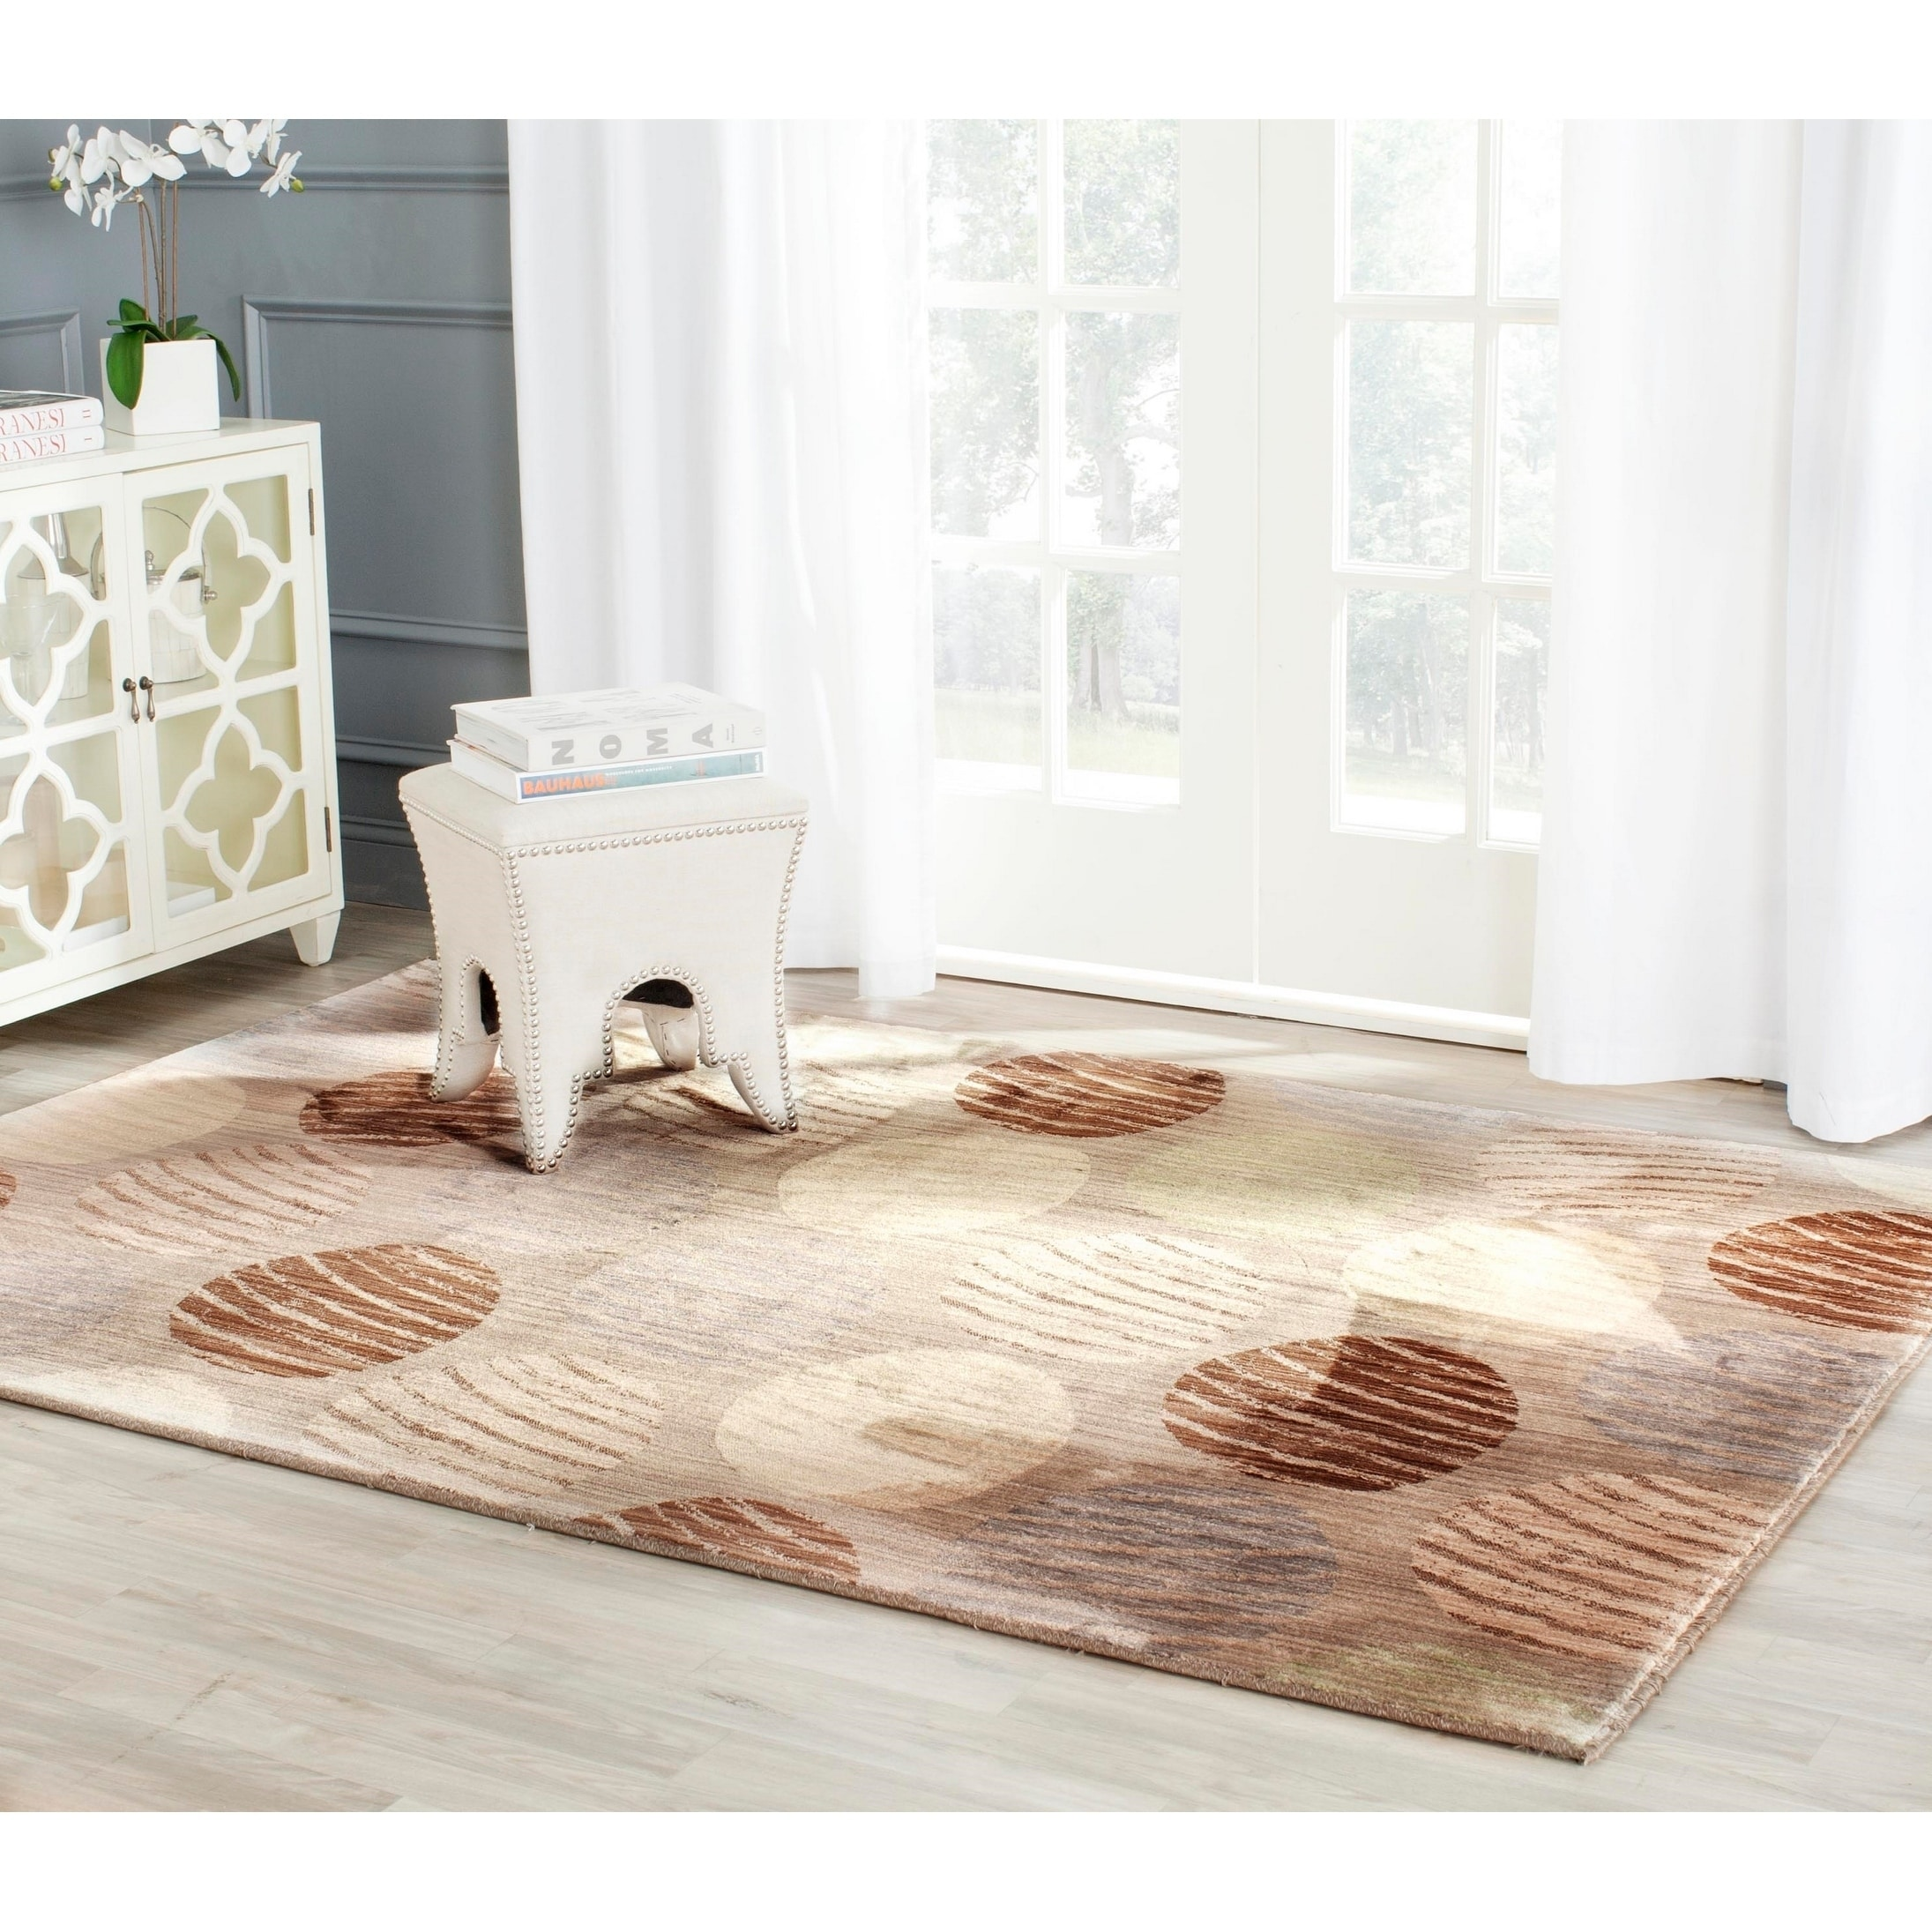 Safavieh Infinity Taupe/ Beige Polyester Rug (5'1 x 7'6) ...